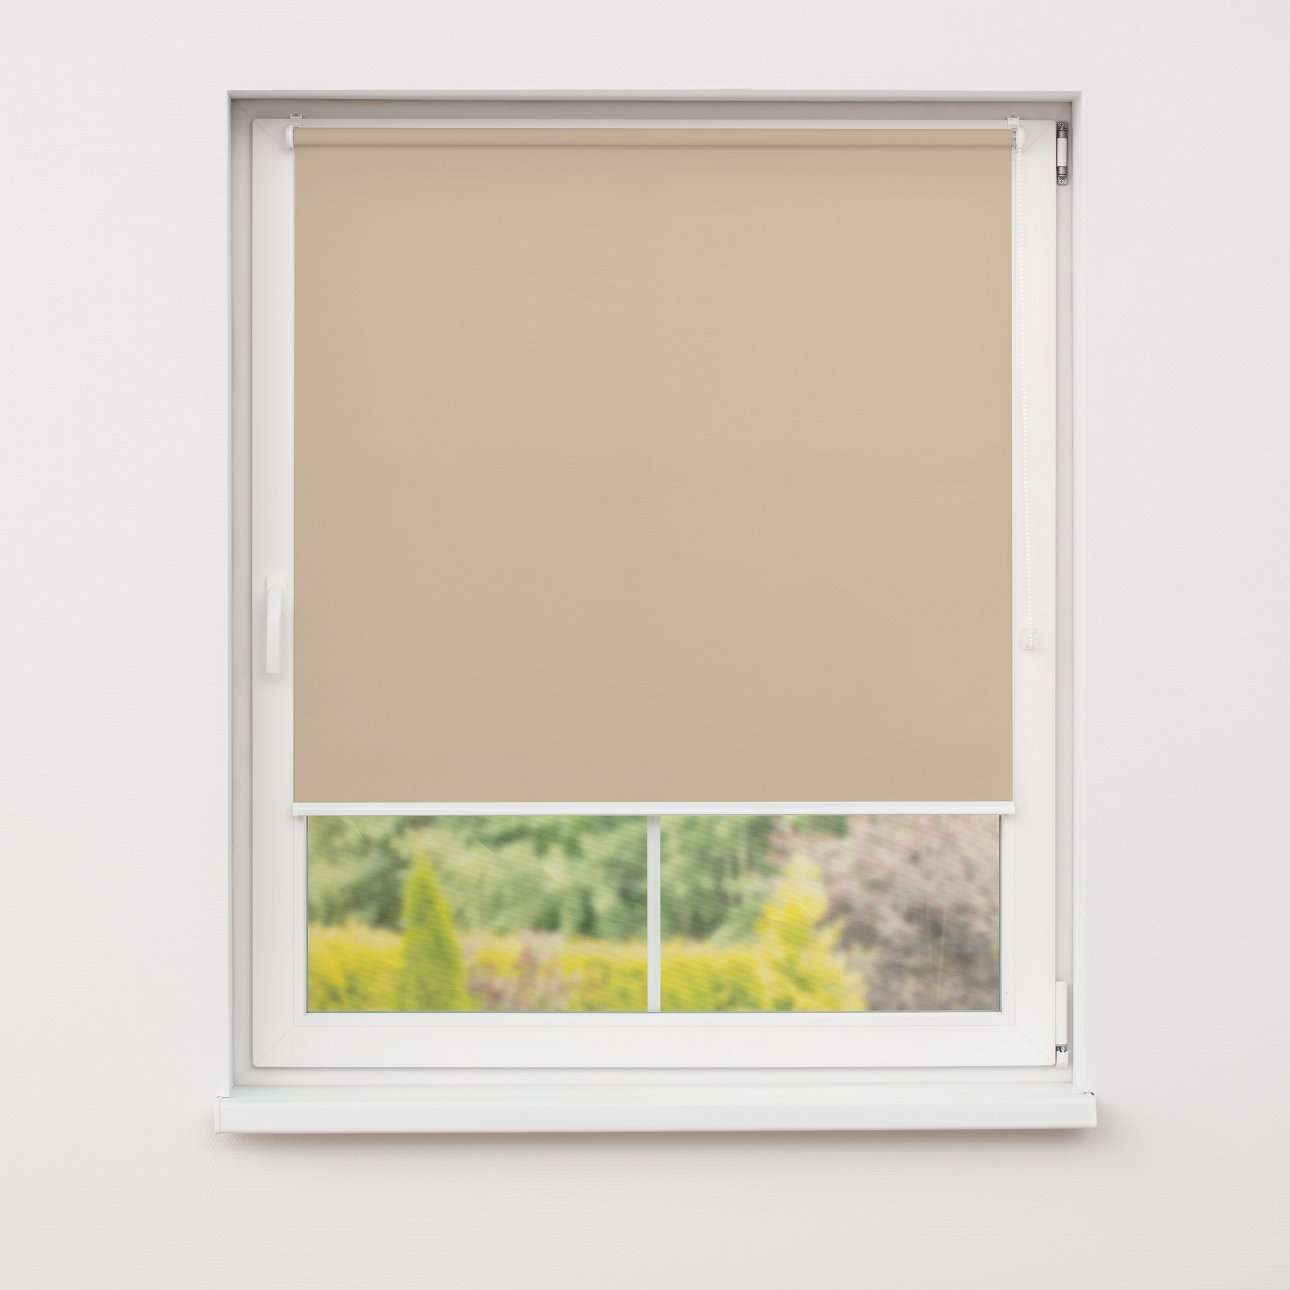 Mini blackout roller blind in collection Roller blind blackout, fabric: 053